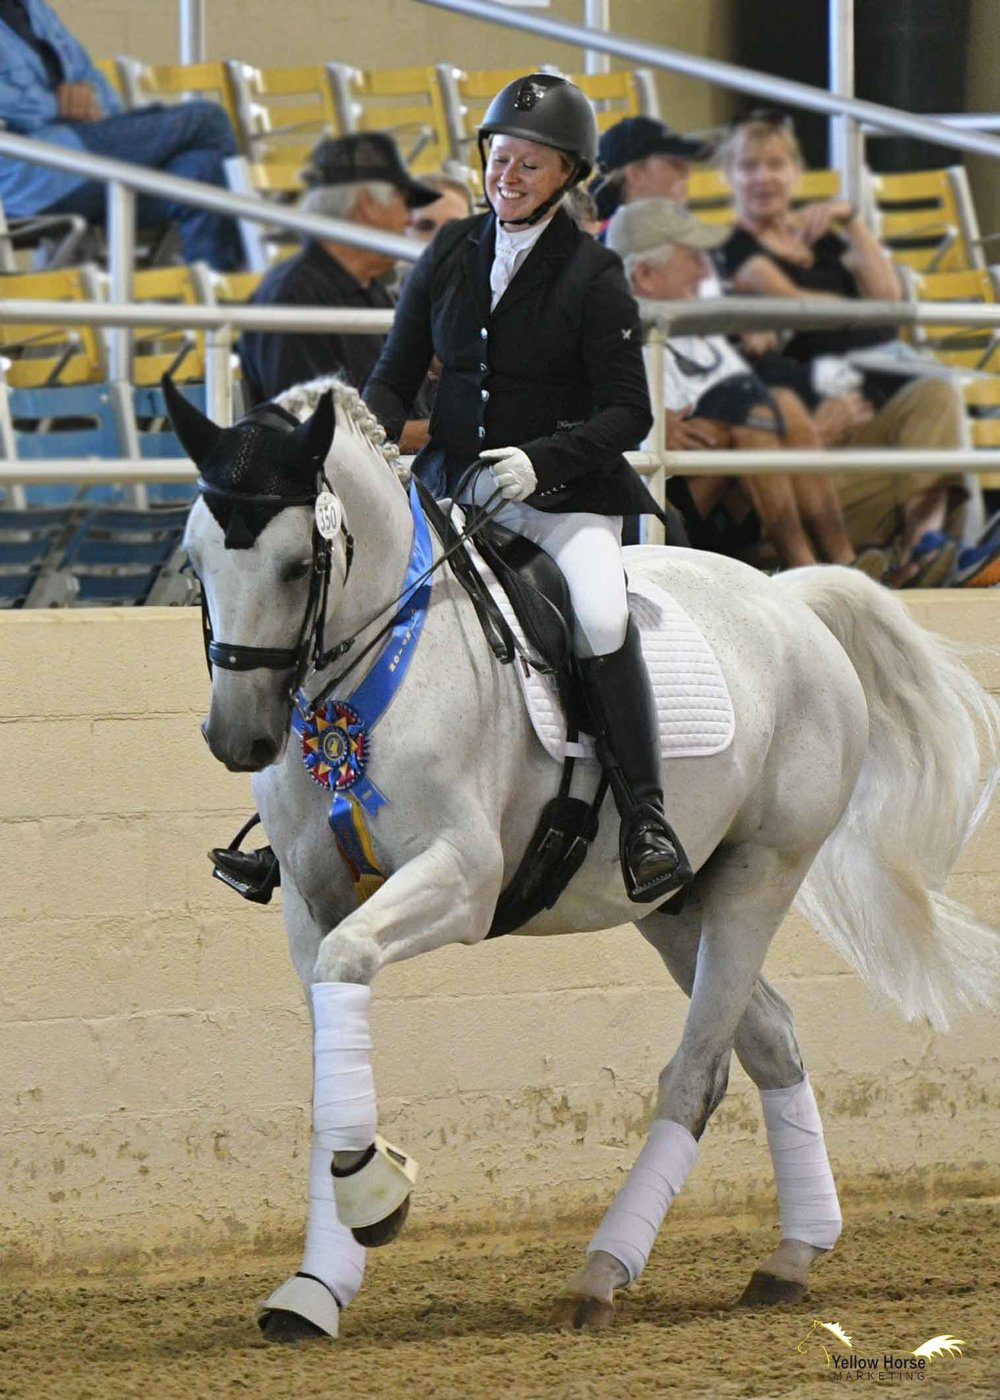 Despite being a relative newcomer to dressage, Alana Andrews and her Lusitano gelding Caju won the Great American Insurance Group/USDF Region 7 Adult Amateur Third Level Championship at the 2018 CDS Championship Show. Photo: Jennifer M. Keeler/Yellow Horse Marketing.